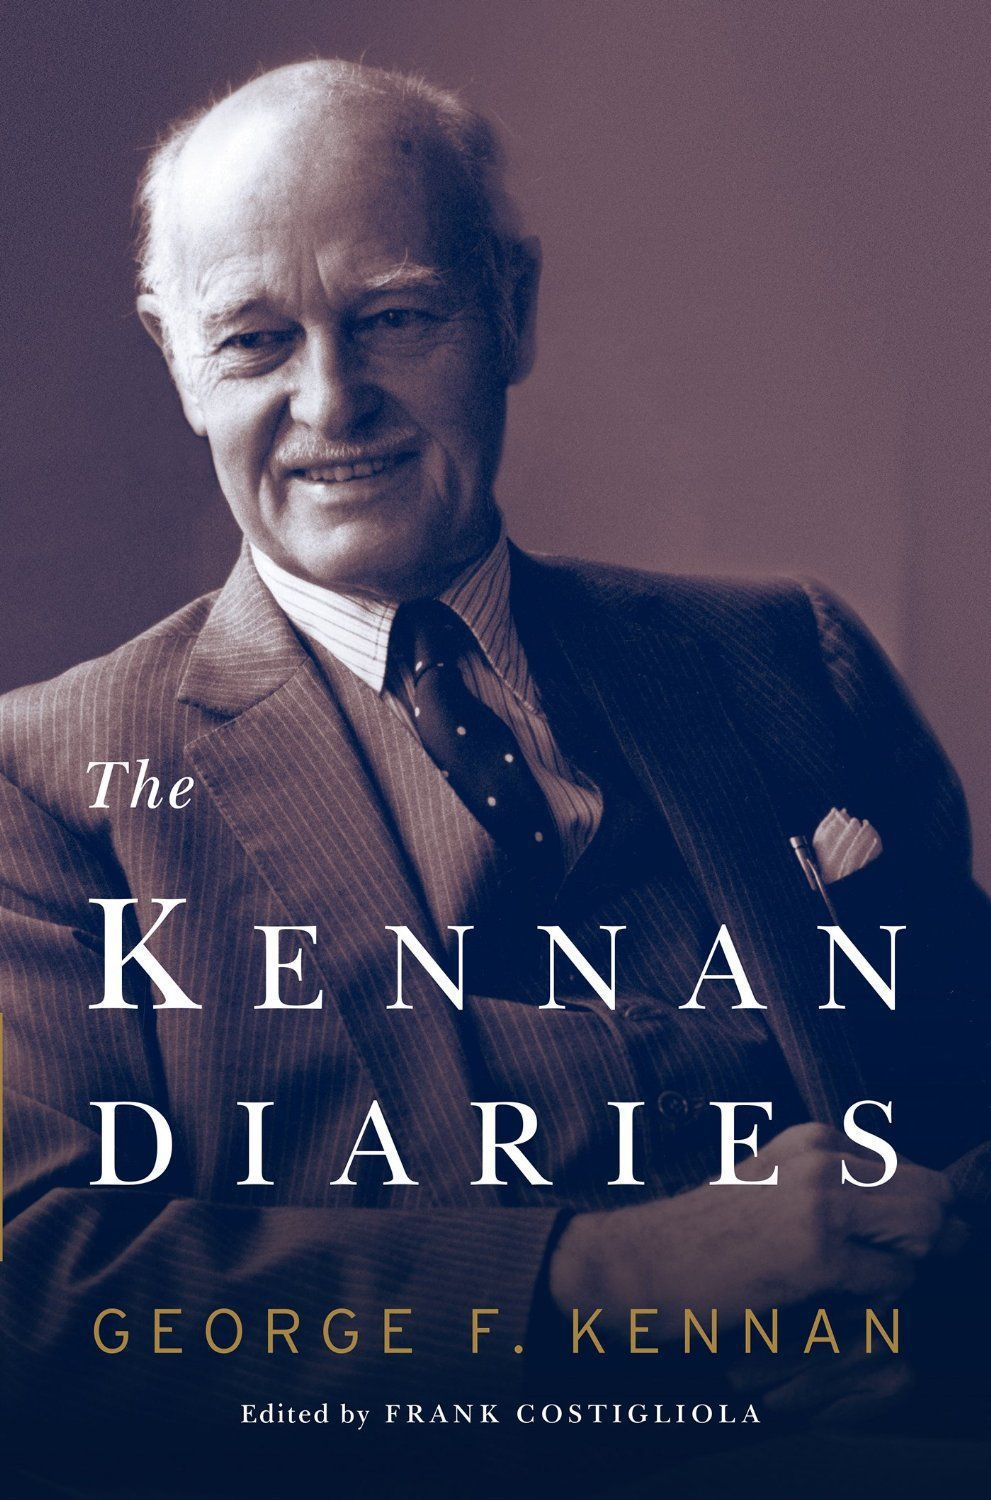 'Kennan Diaries' offer look into astute mind of diplomat